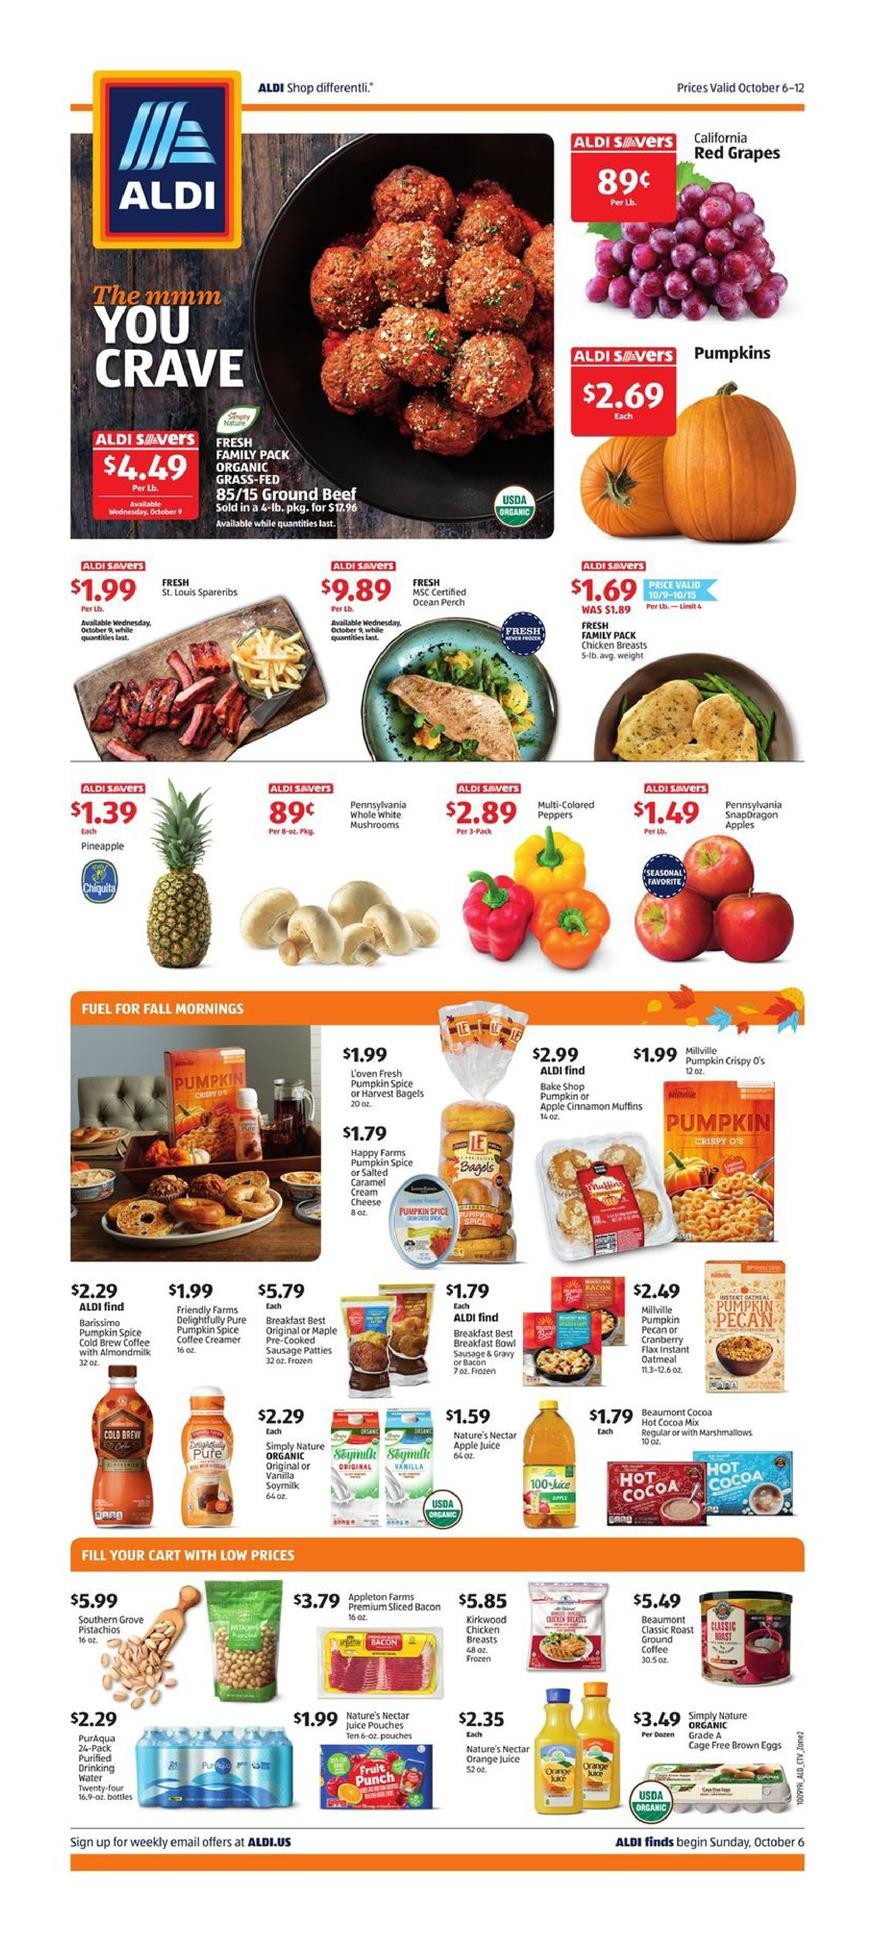 aldi weekly ad fall sale and pumpkin flavors from oct 6 to 12 2019